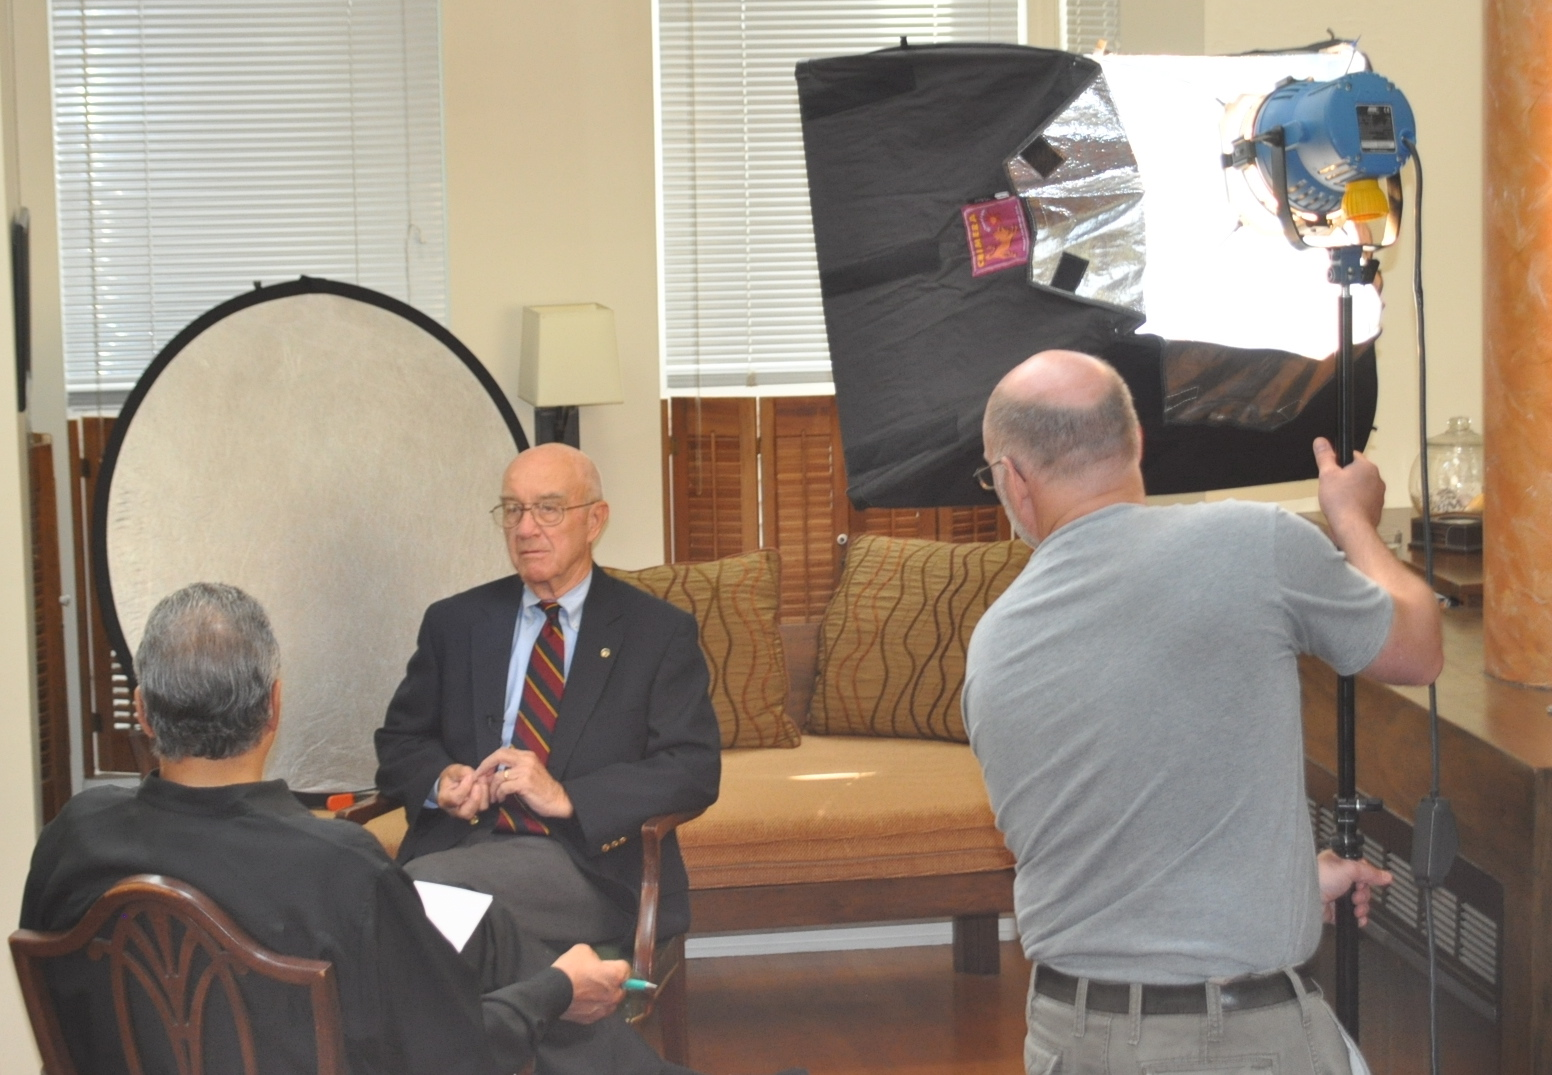 William Braker is interviewed by Mark Rosenthal. Videographer Dave Monk adjusts the lighting.